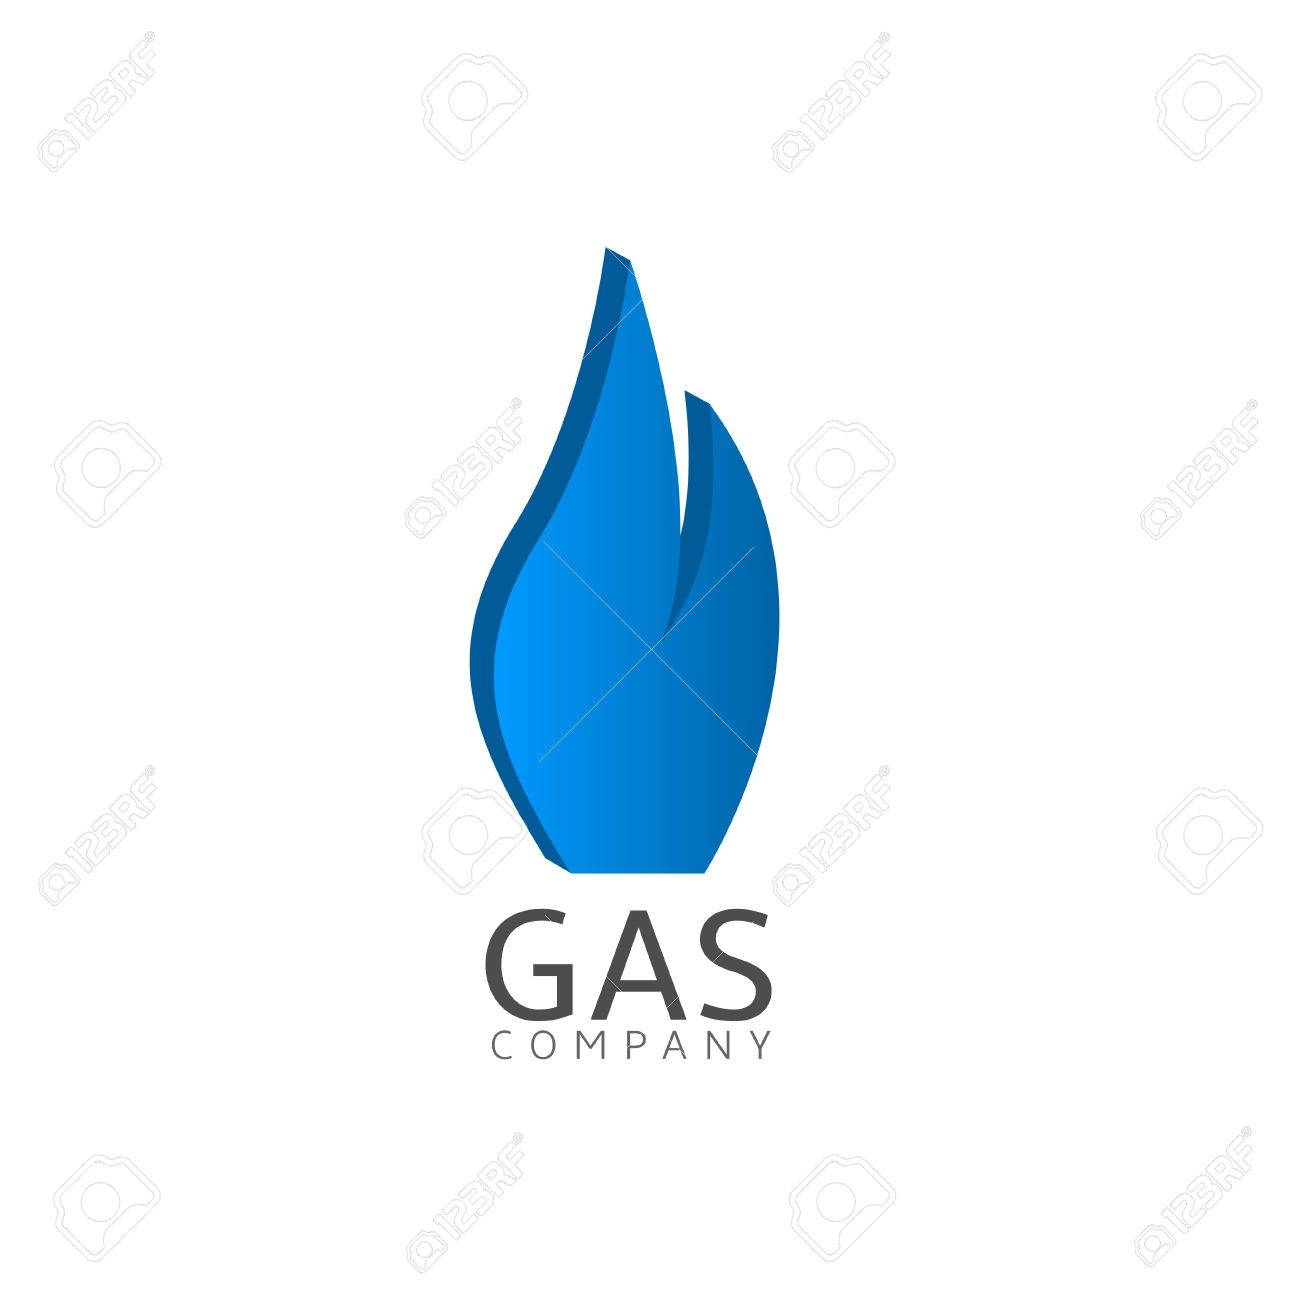 Gas Company Blue Fire Emblem Gas Corporation Sign Royalty Free